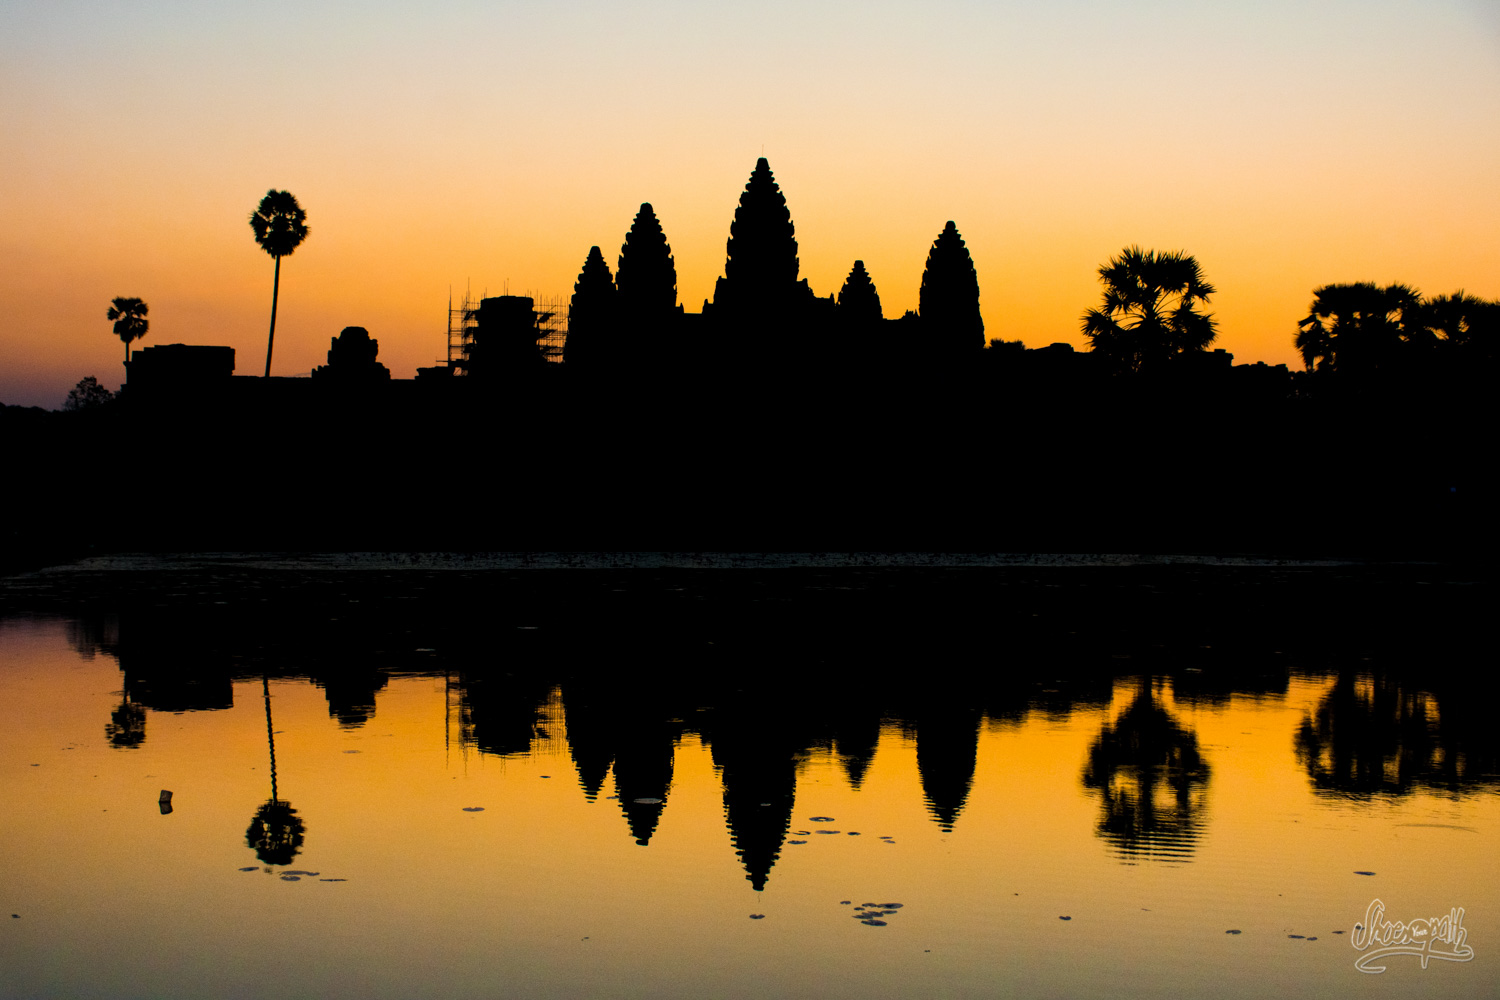 Cambodia – Siem Reap And The Temples Of Angkor